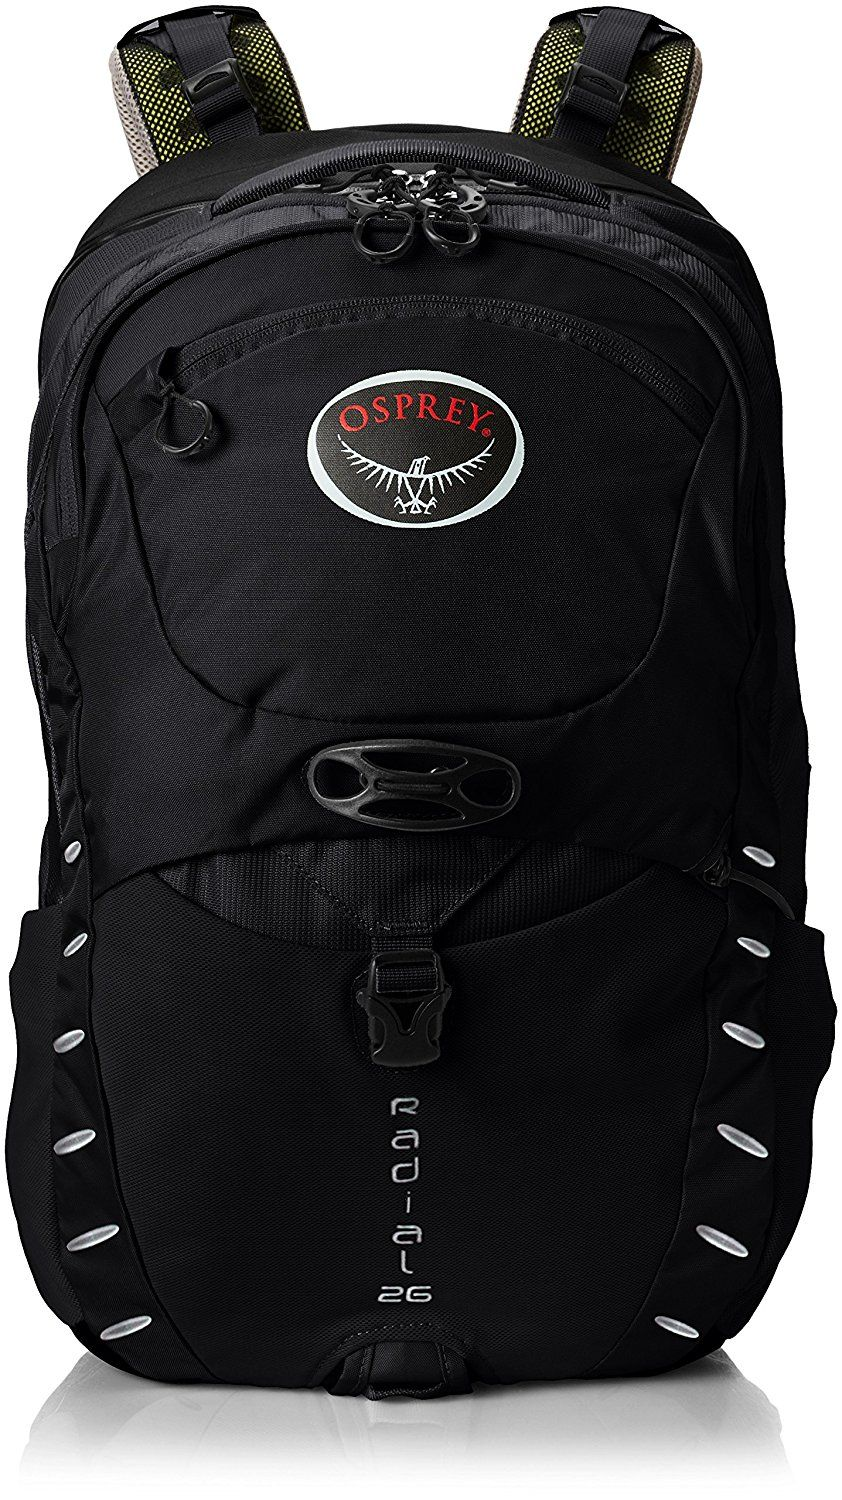 edf4224389b6 Osprey Packs Radial 26 Daypack > Remarkable product available now ...